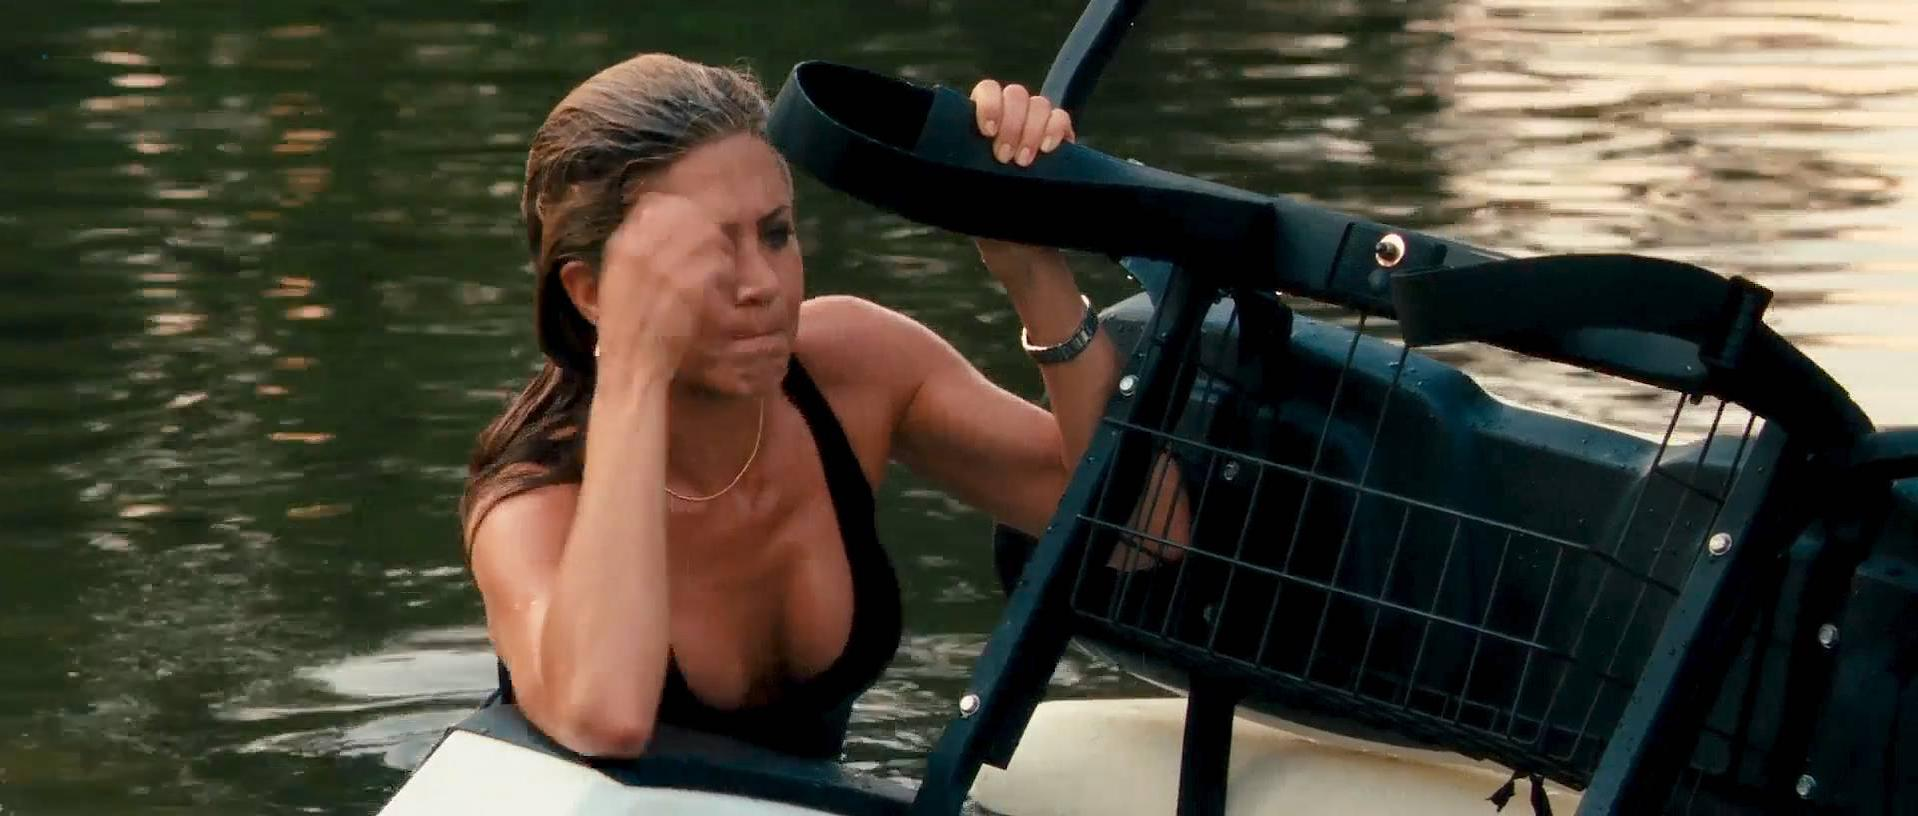 Jennifer Aniston sexy - The Bounty Hunter (2010)